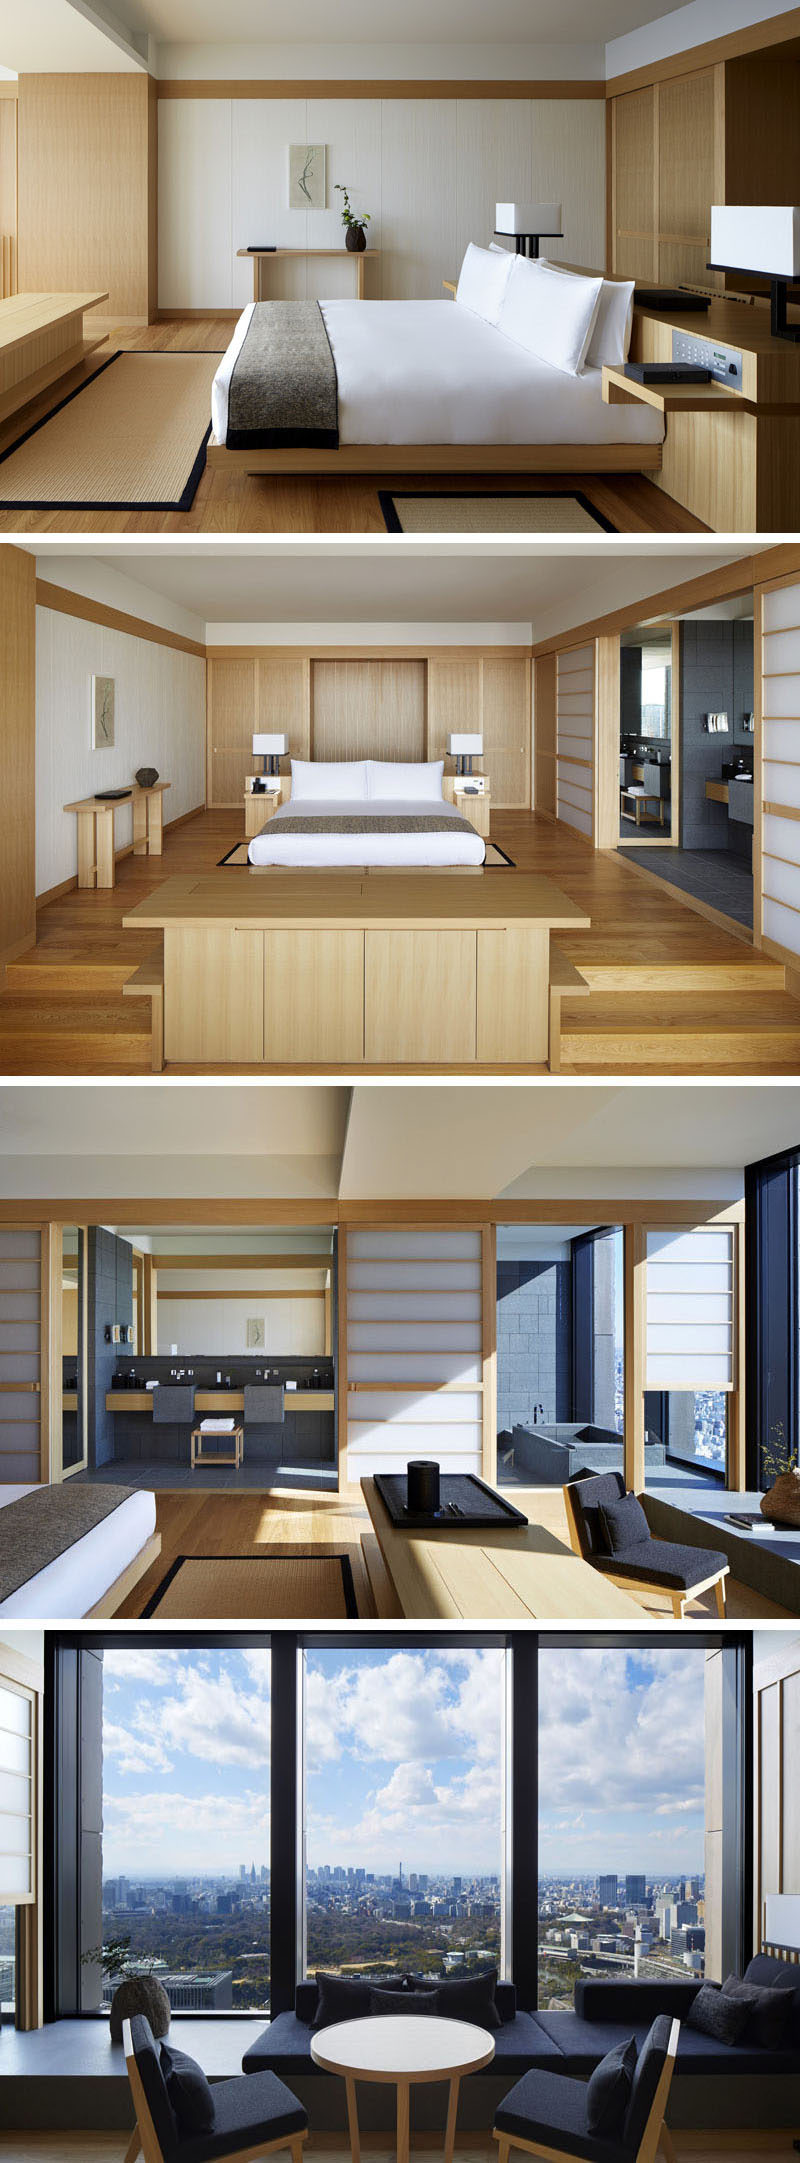 Japanese Furniture Design Ideas